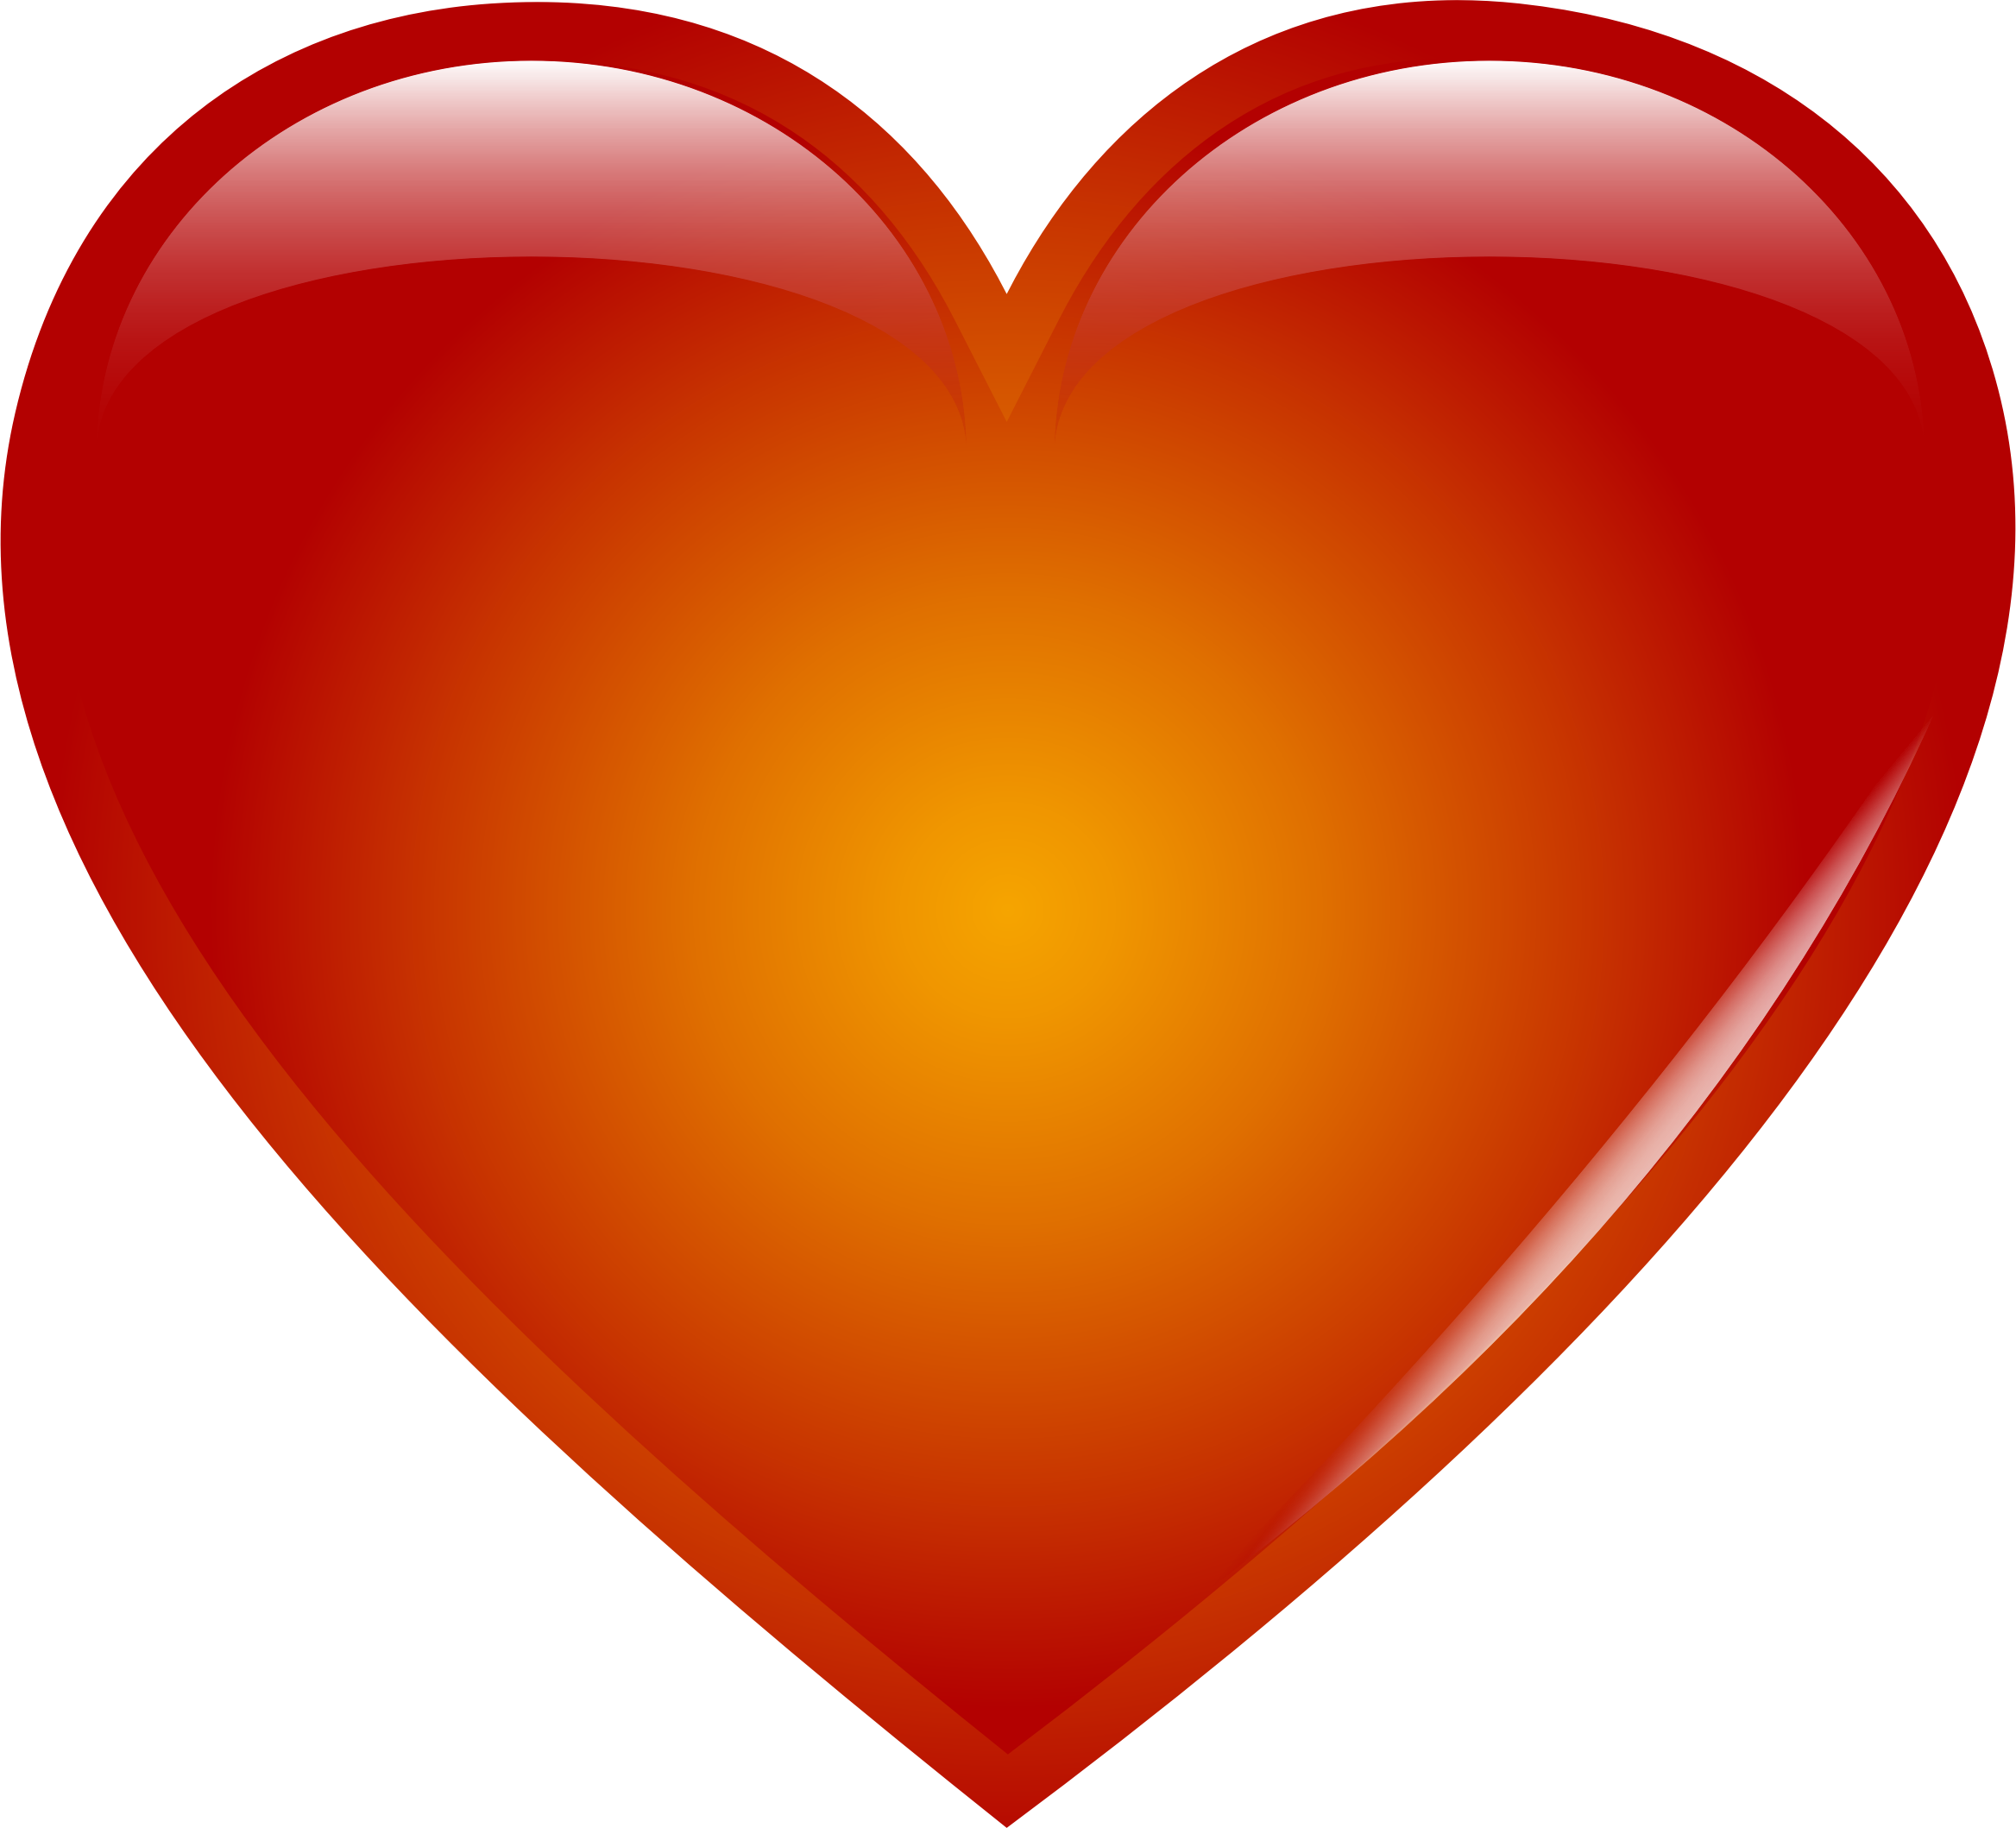 Red heart clipart png. Transparent pictures free icons